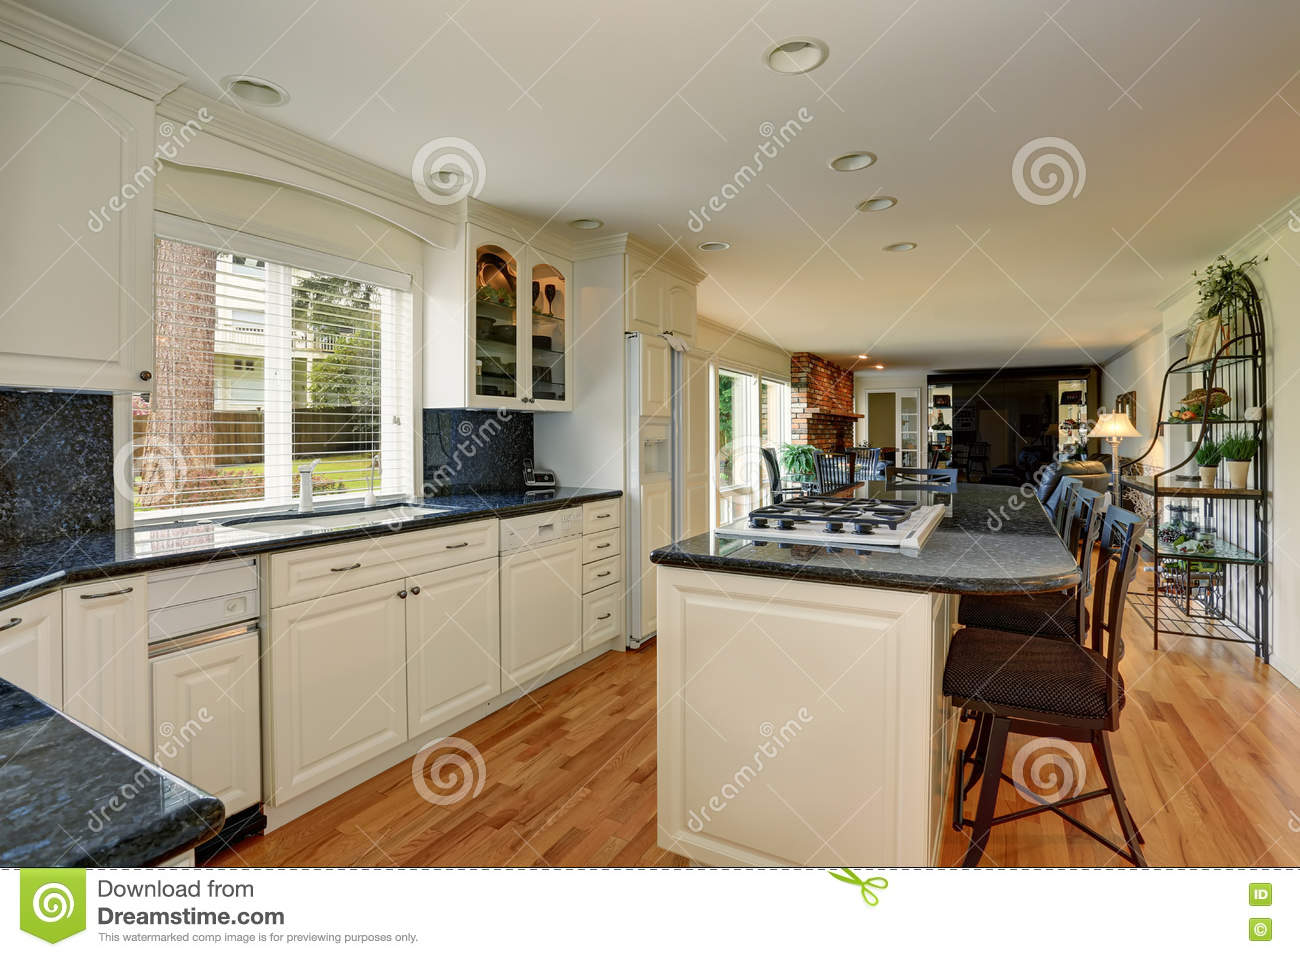 Bright Kitchen Cabinets Bright Kitchen Room Interior With White Cabinets And